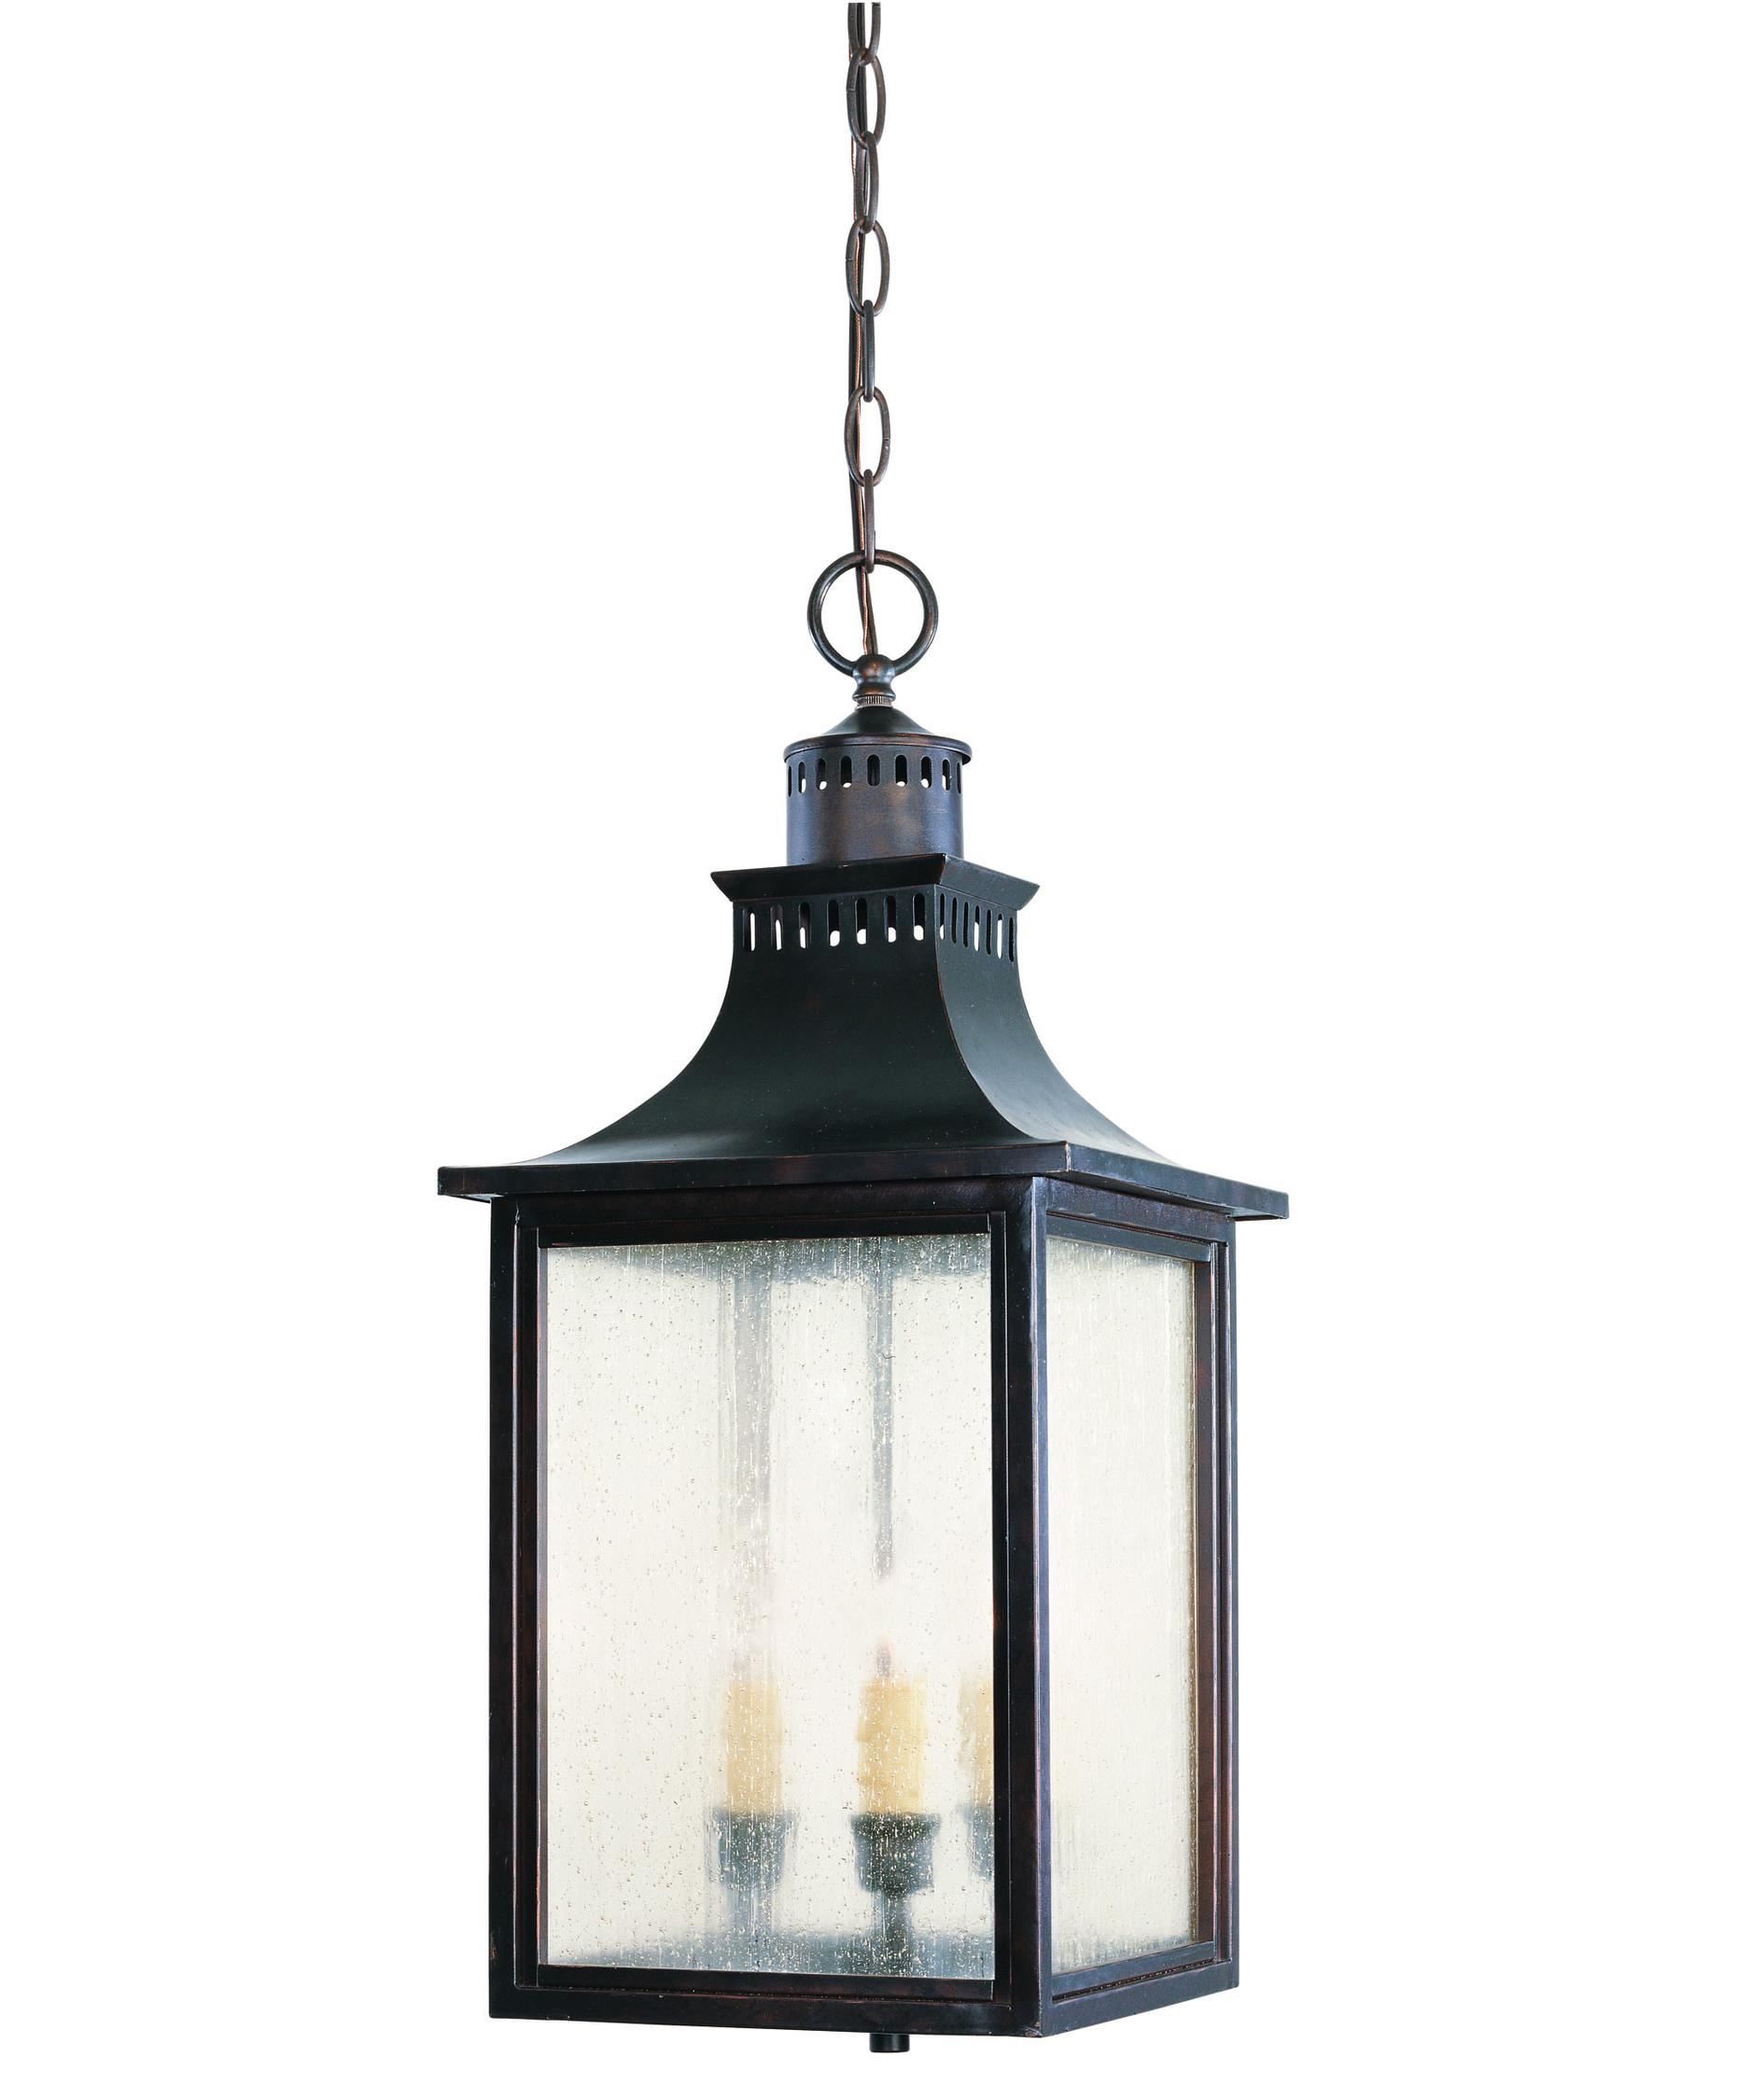 Outdoor Hanging Lighting - Shown in english bronze finish and pale cream seeded glass